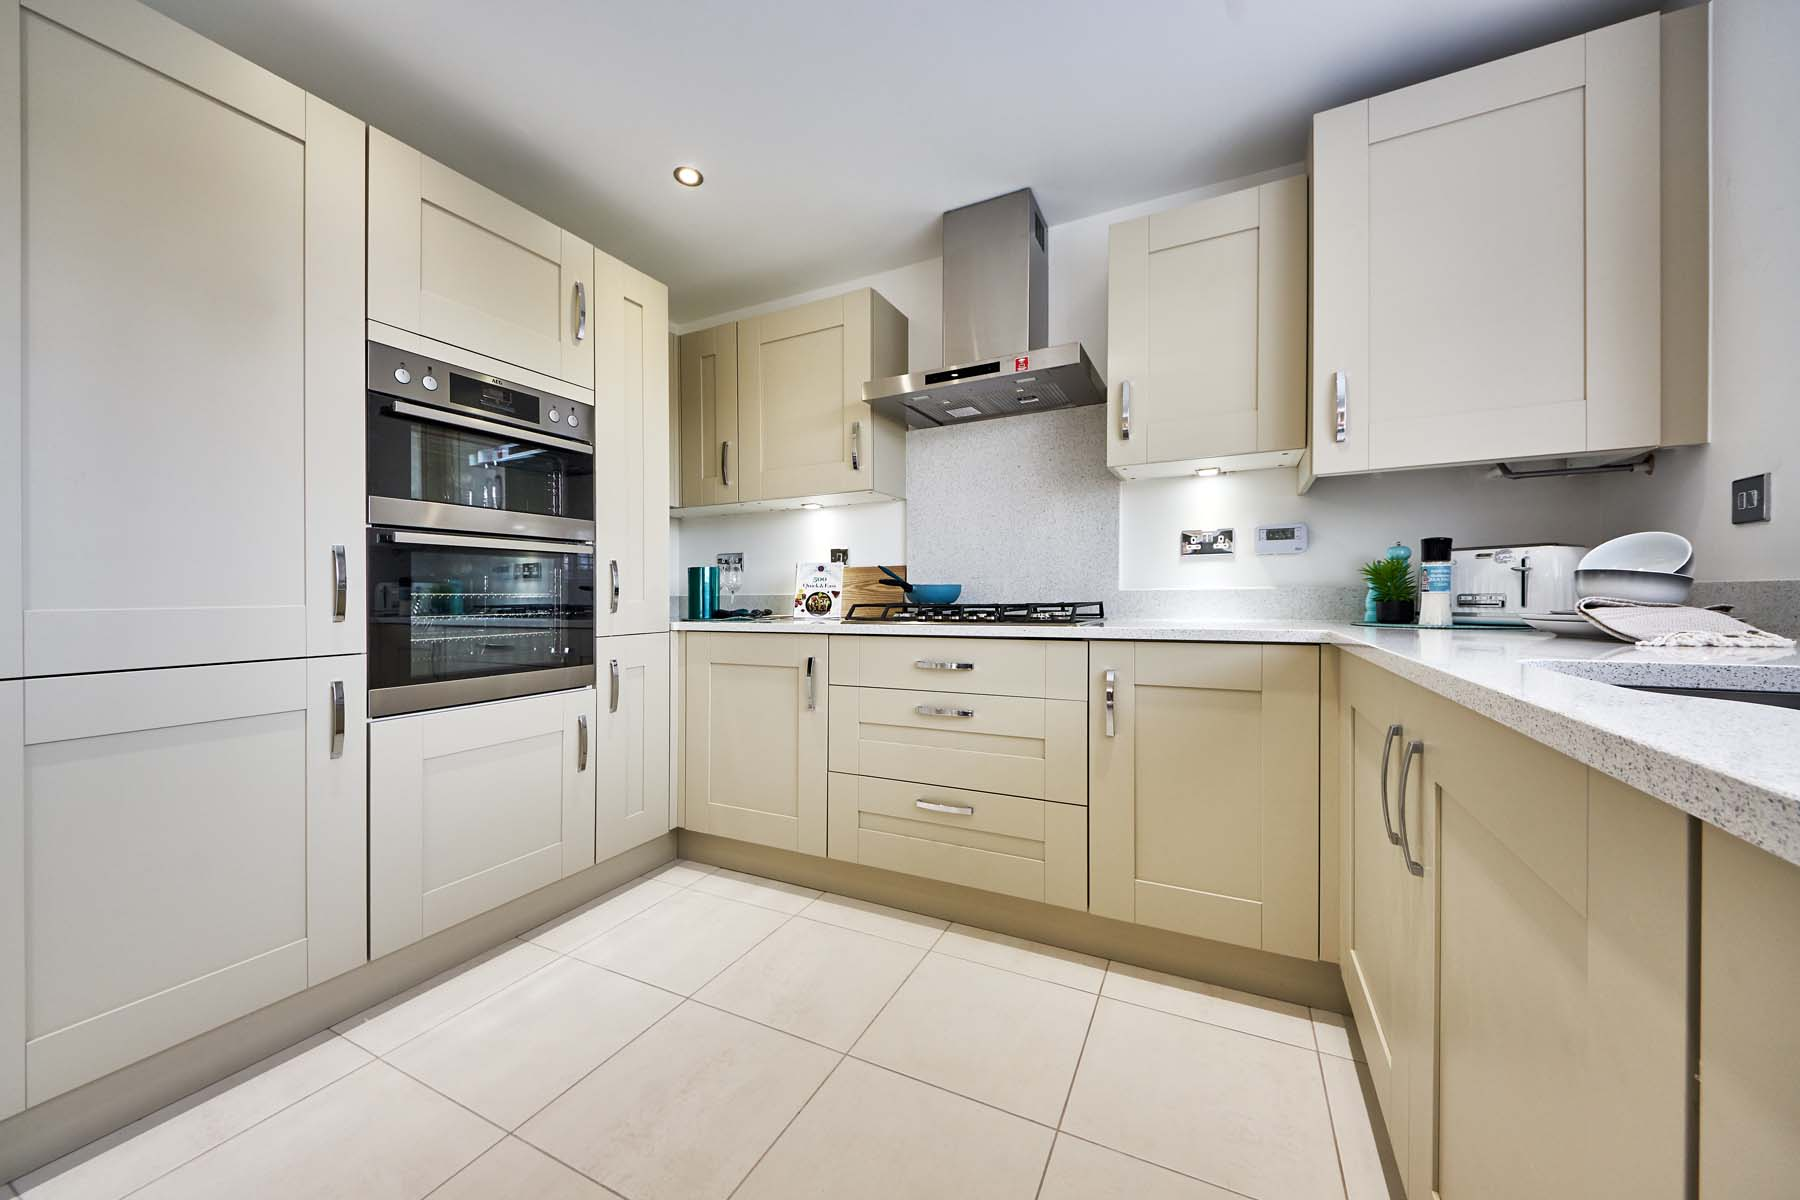 Shelford kitchen 1a-showhome-11